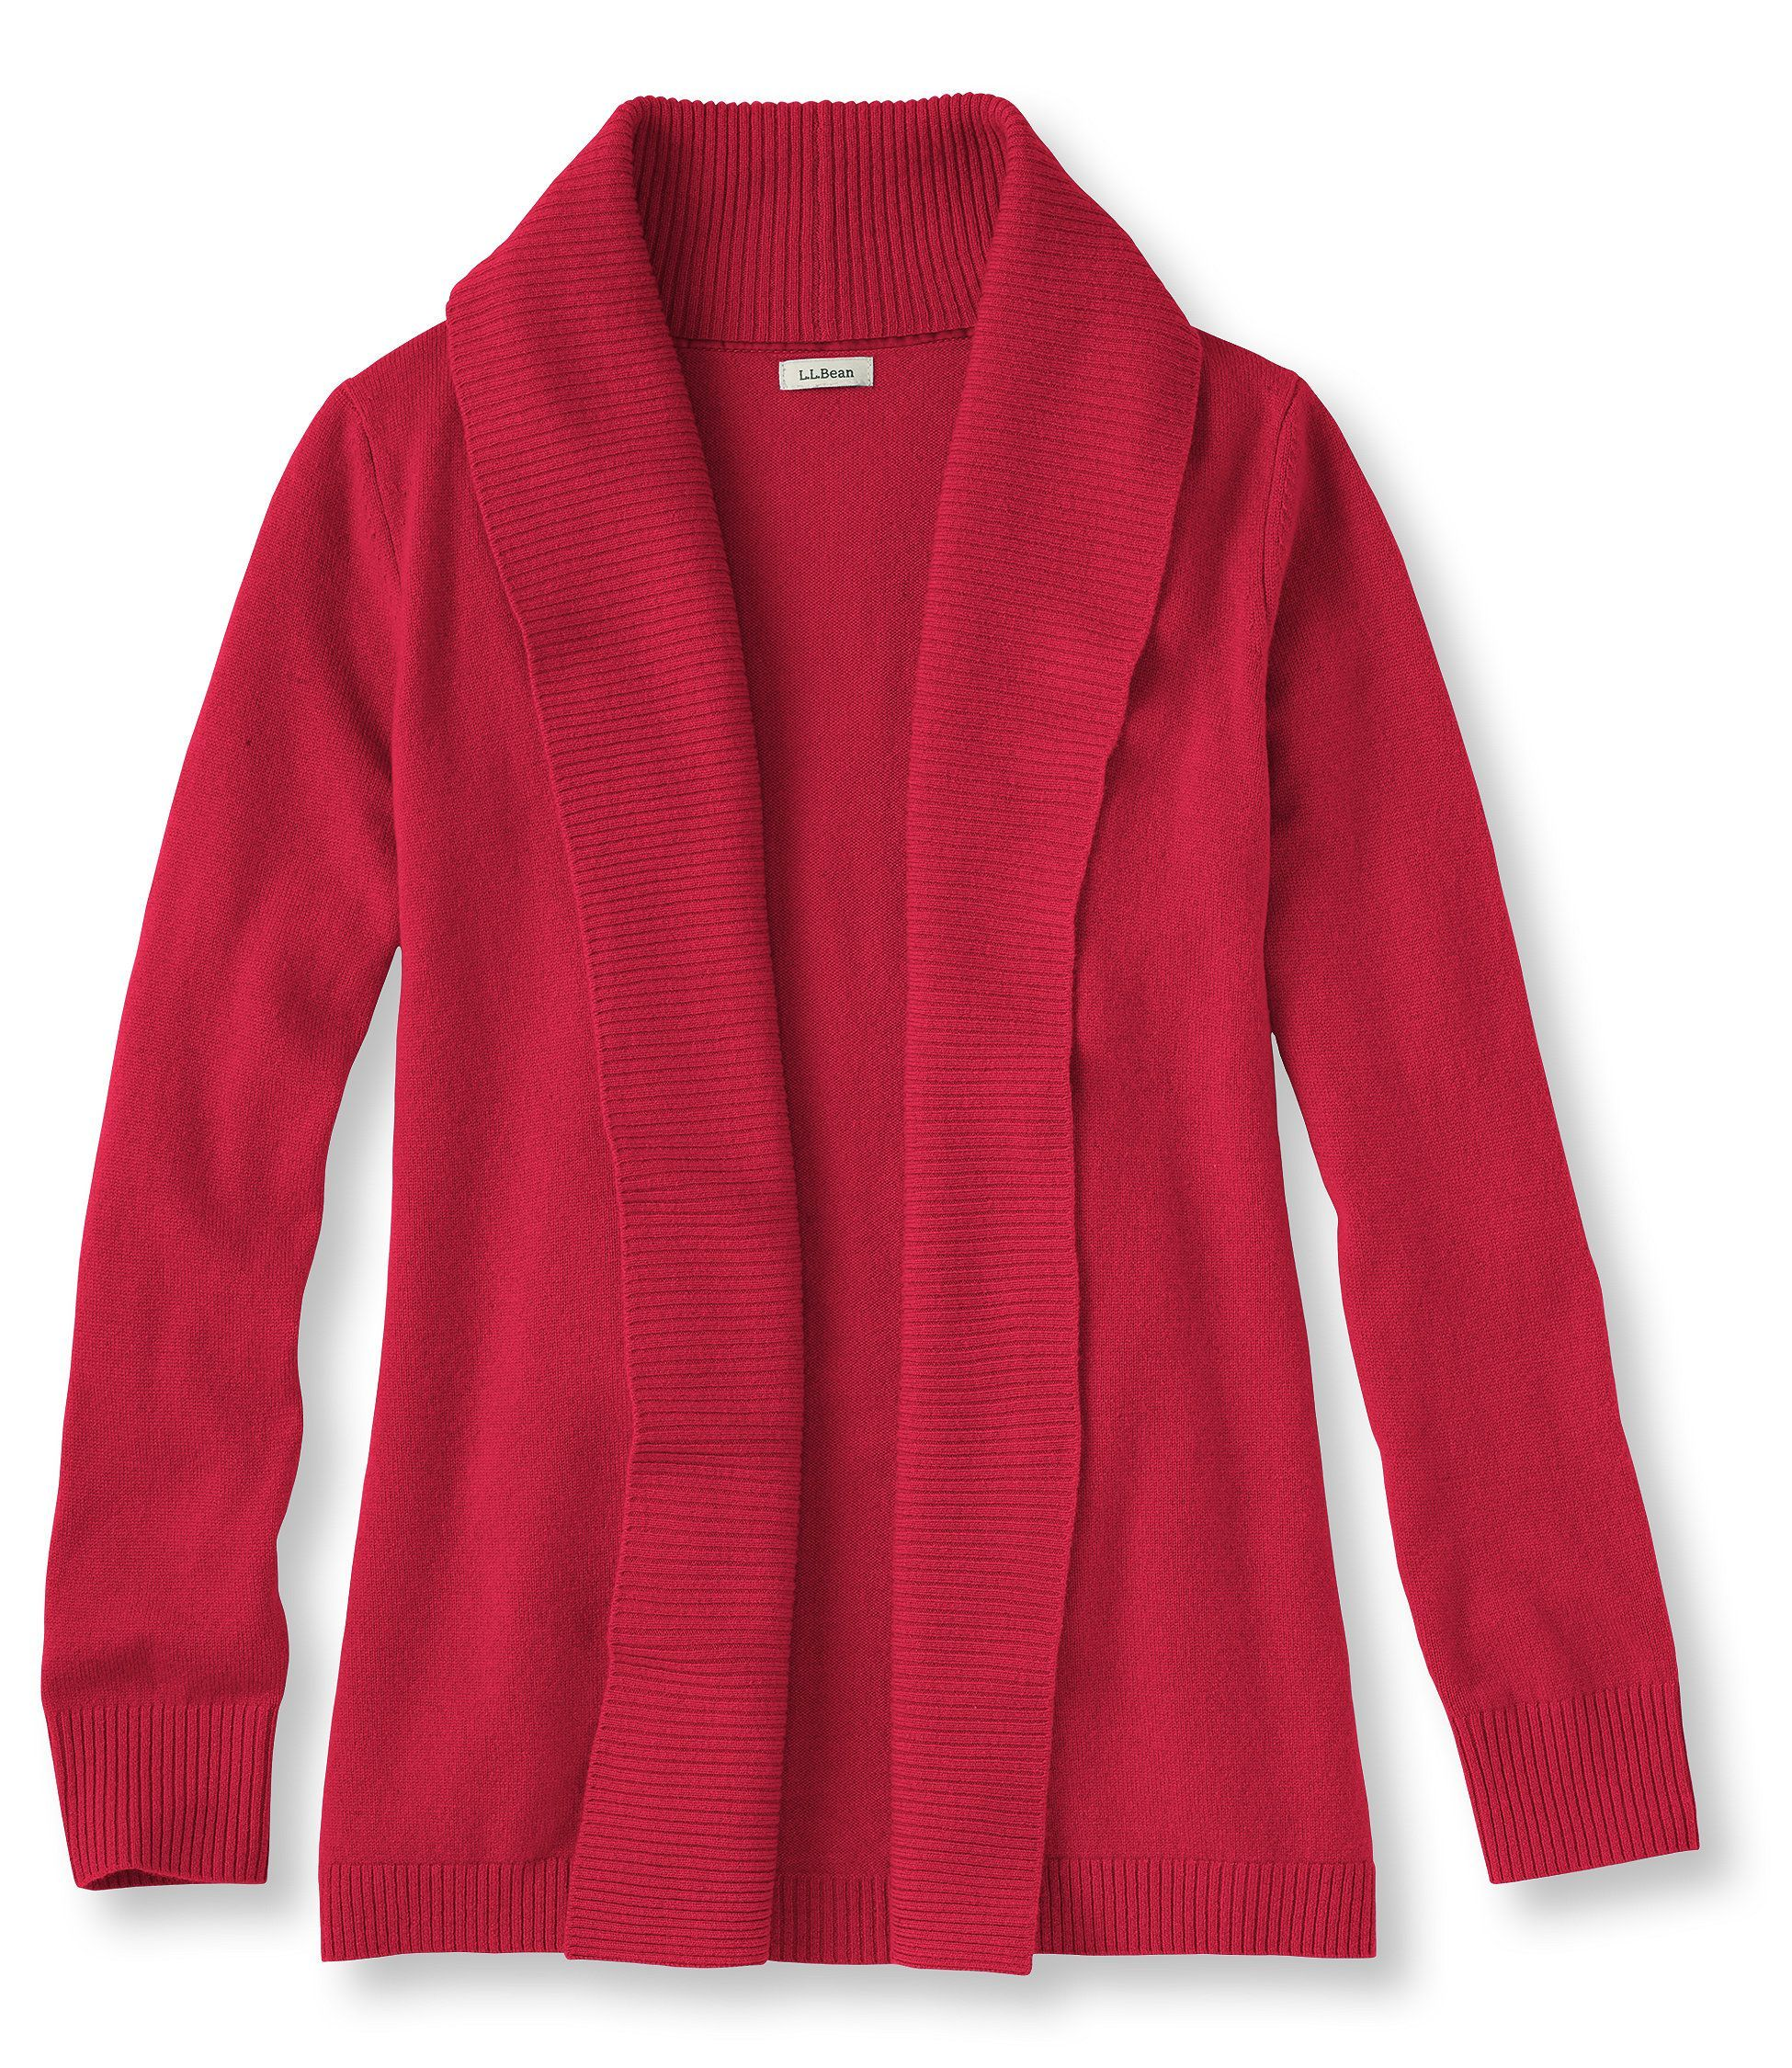 Flannel cardigan womens  Classic Cashmere Sweater  Products